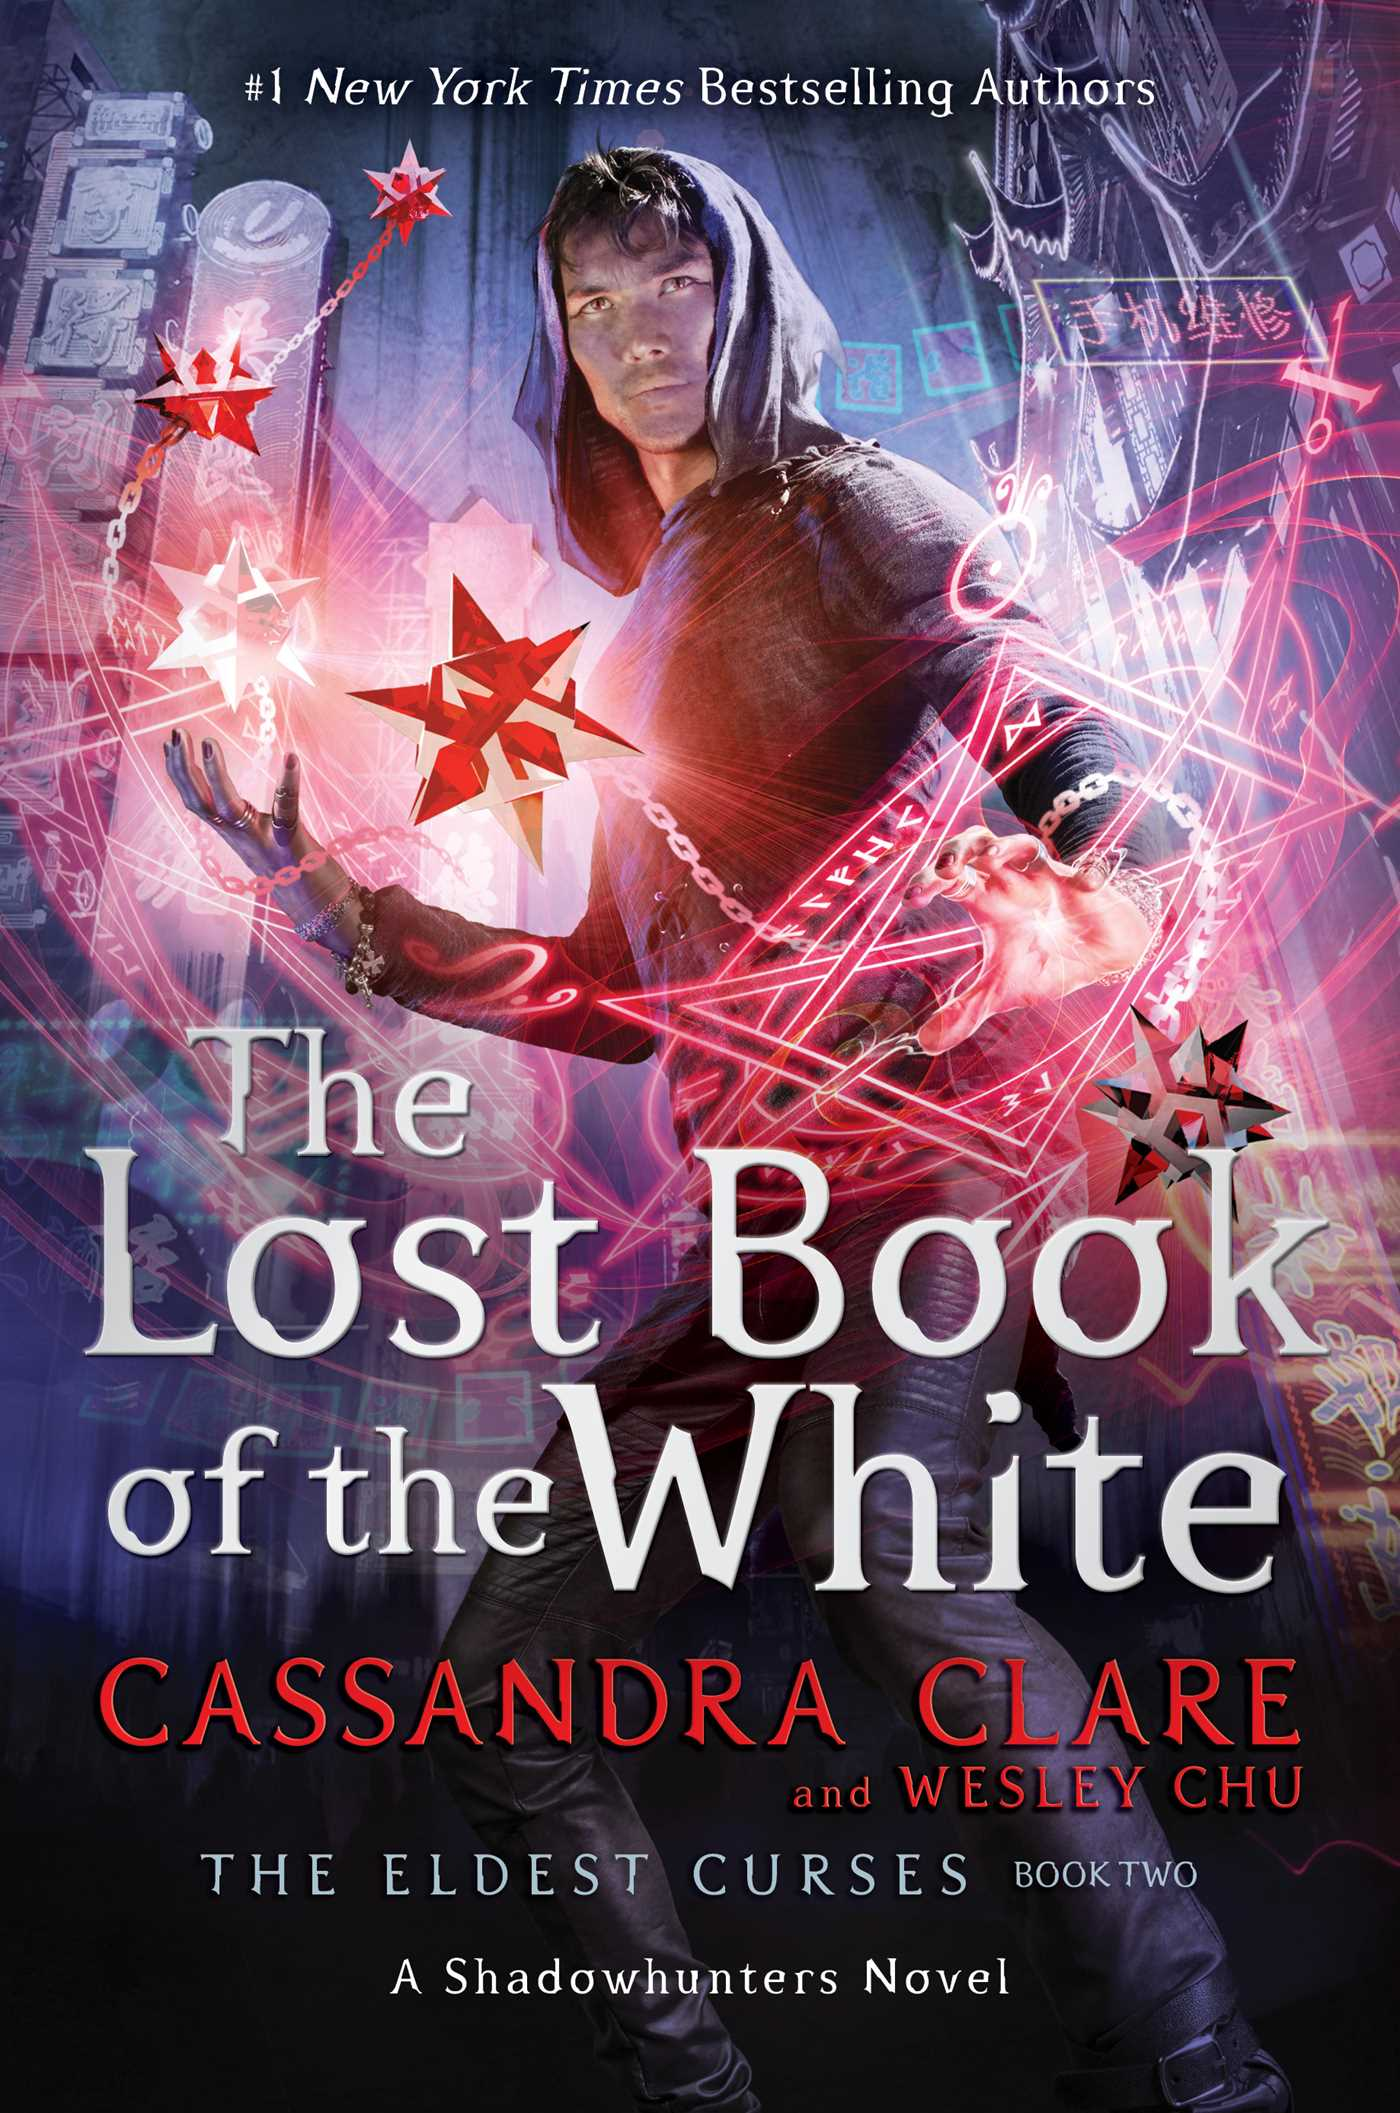 The Lost Book of the White | Book by Cassandra Clare, Wesley Chu | Official Publisher Page | Simon & Schuster